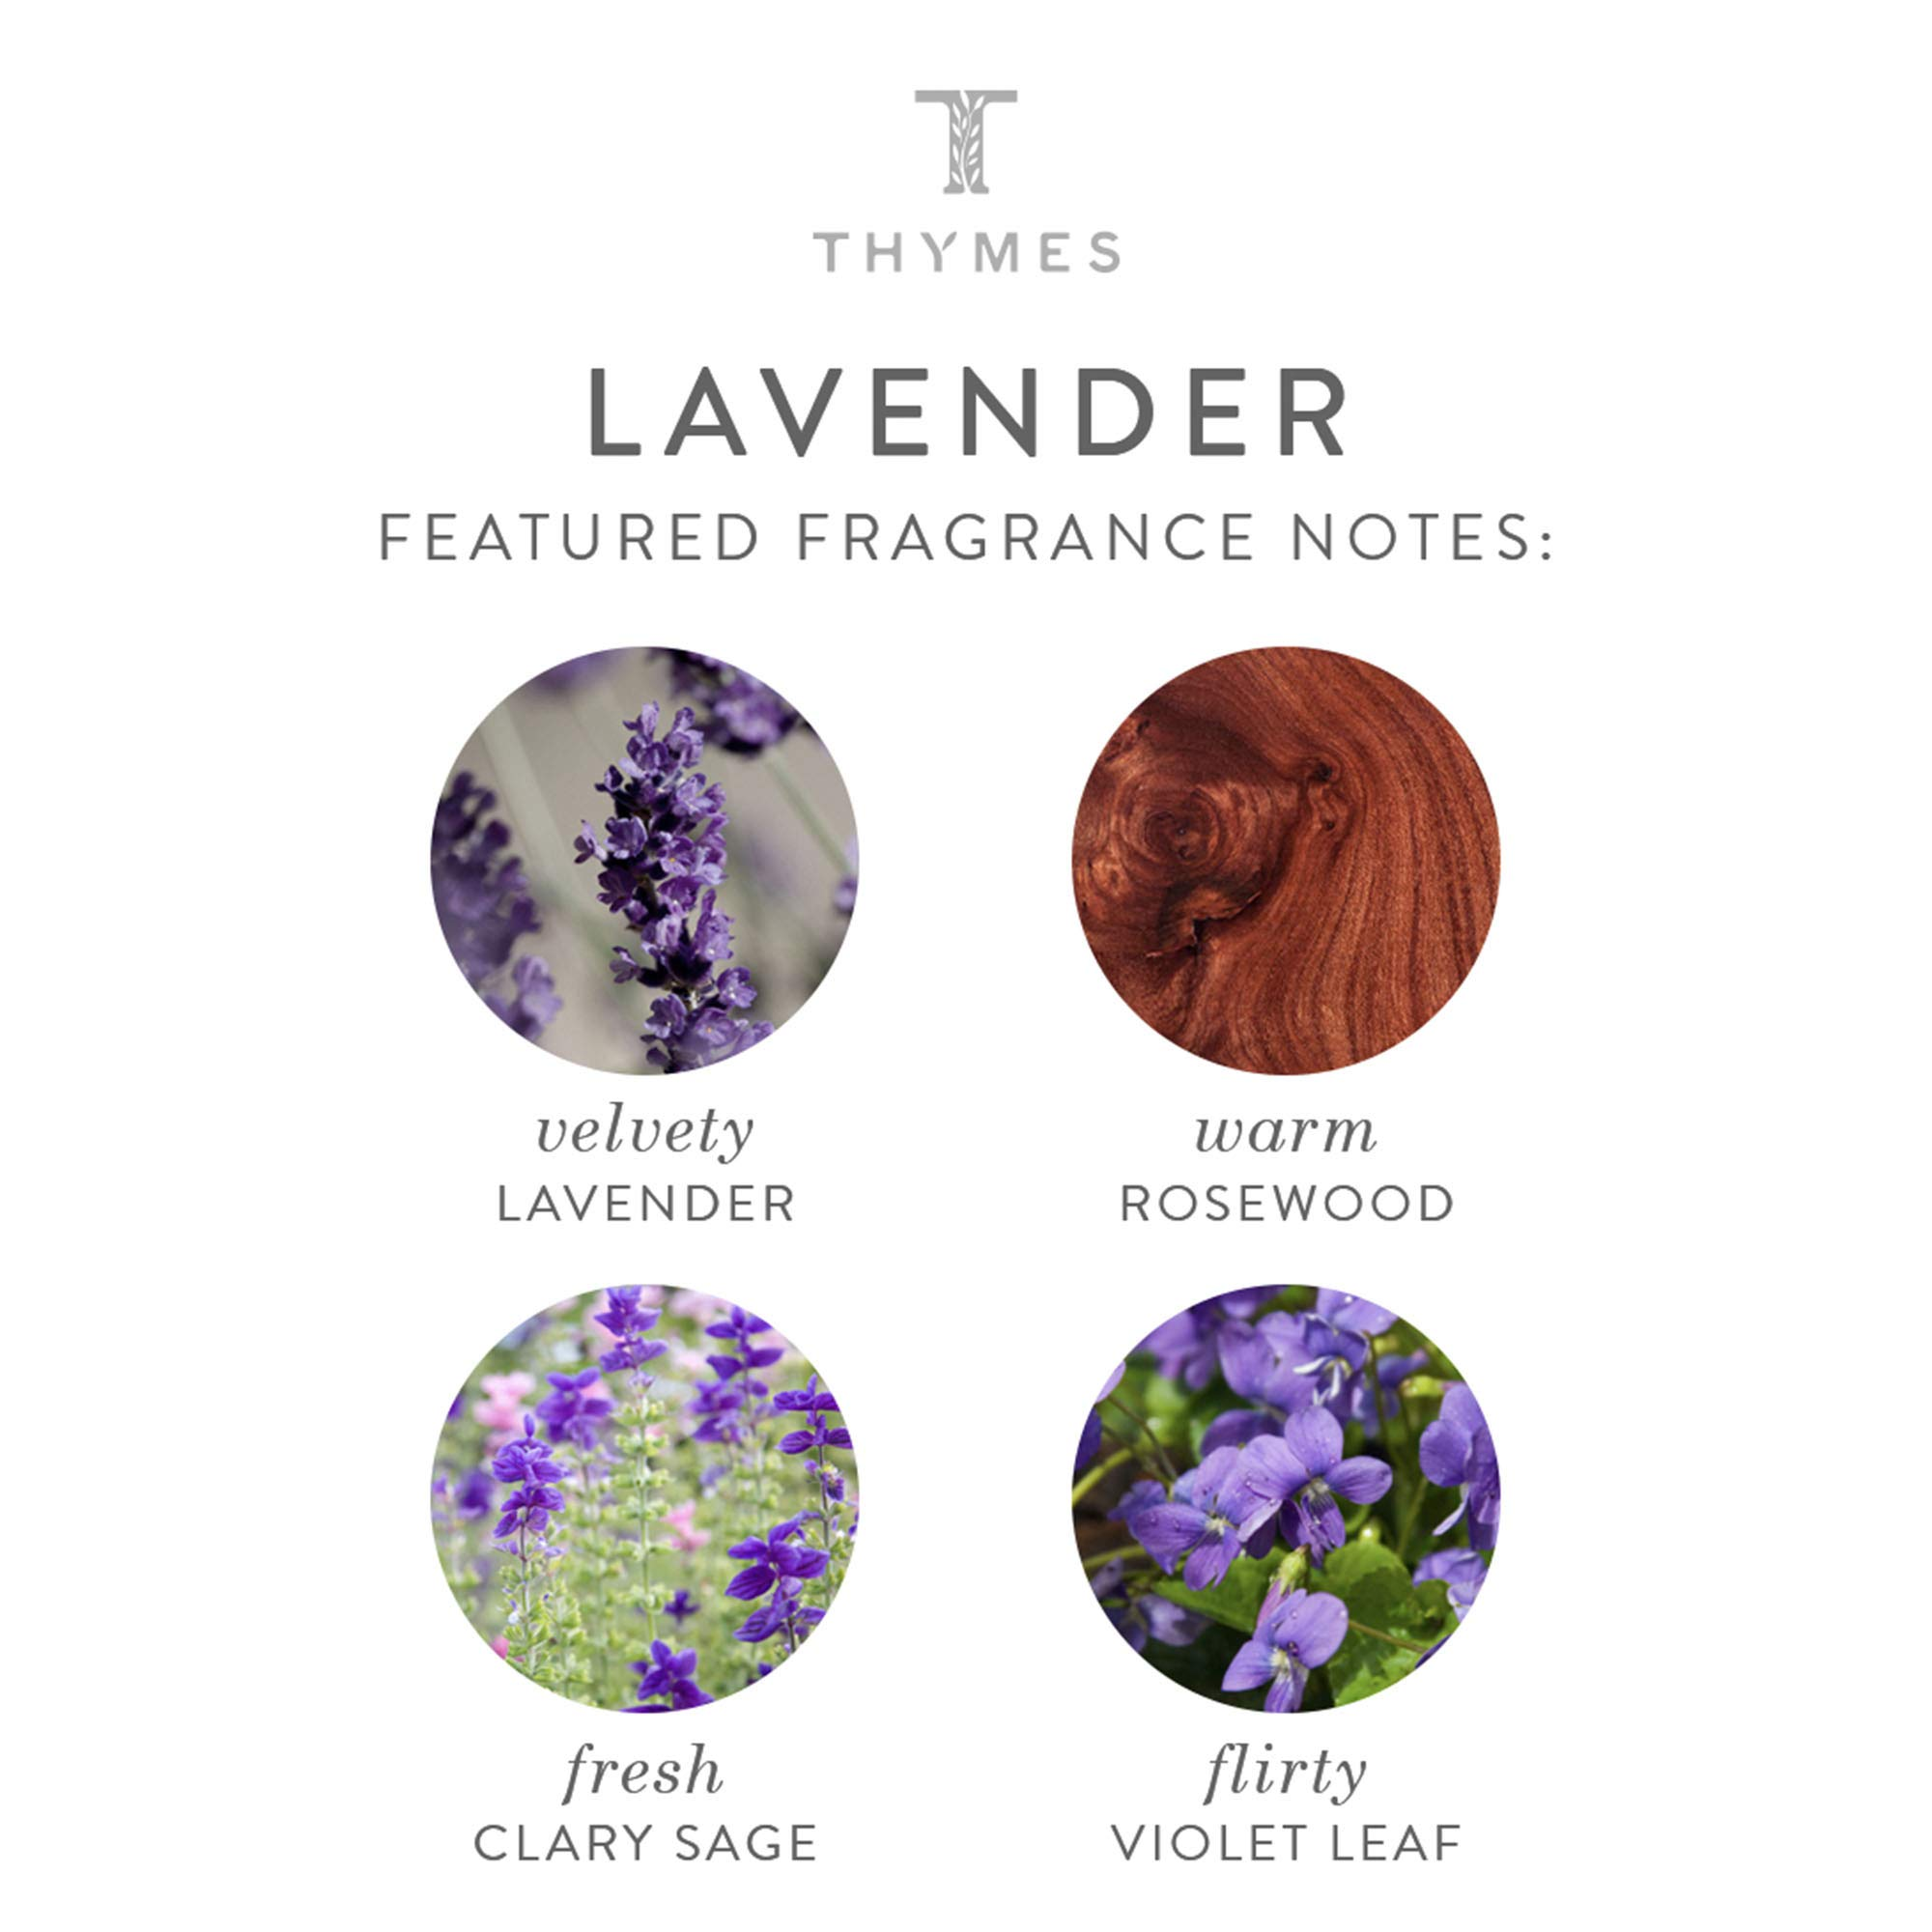 Thymes - Lavender Hand Lotion with Pump - 8.25 oz by Thymes (Image #3)